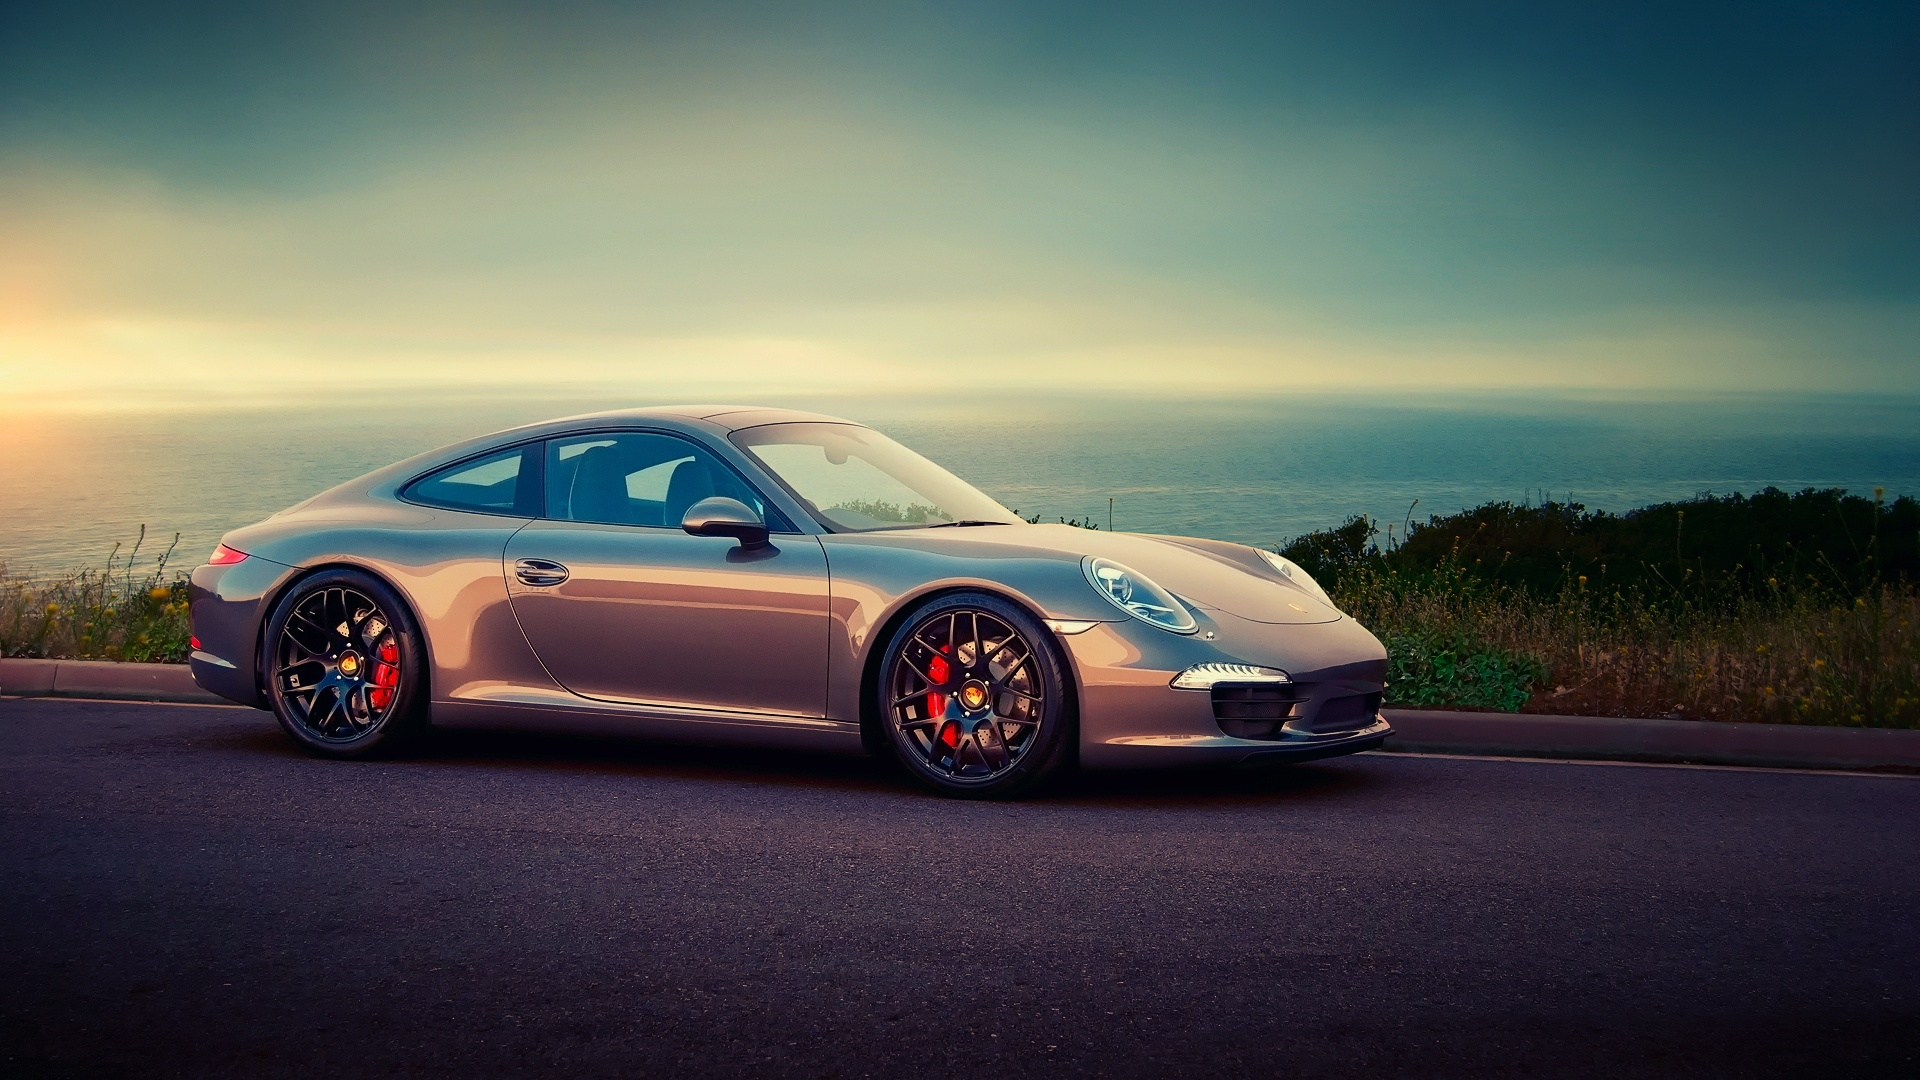 Porsche full hd wallpaper and achtergrond 1920x1080 id - Porche para autos ...